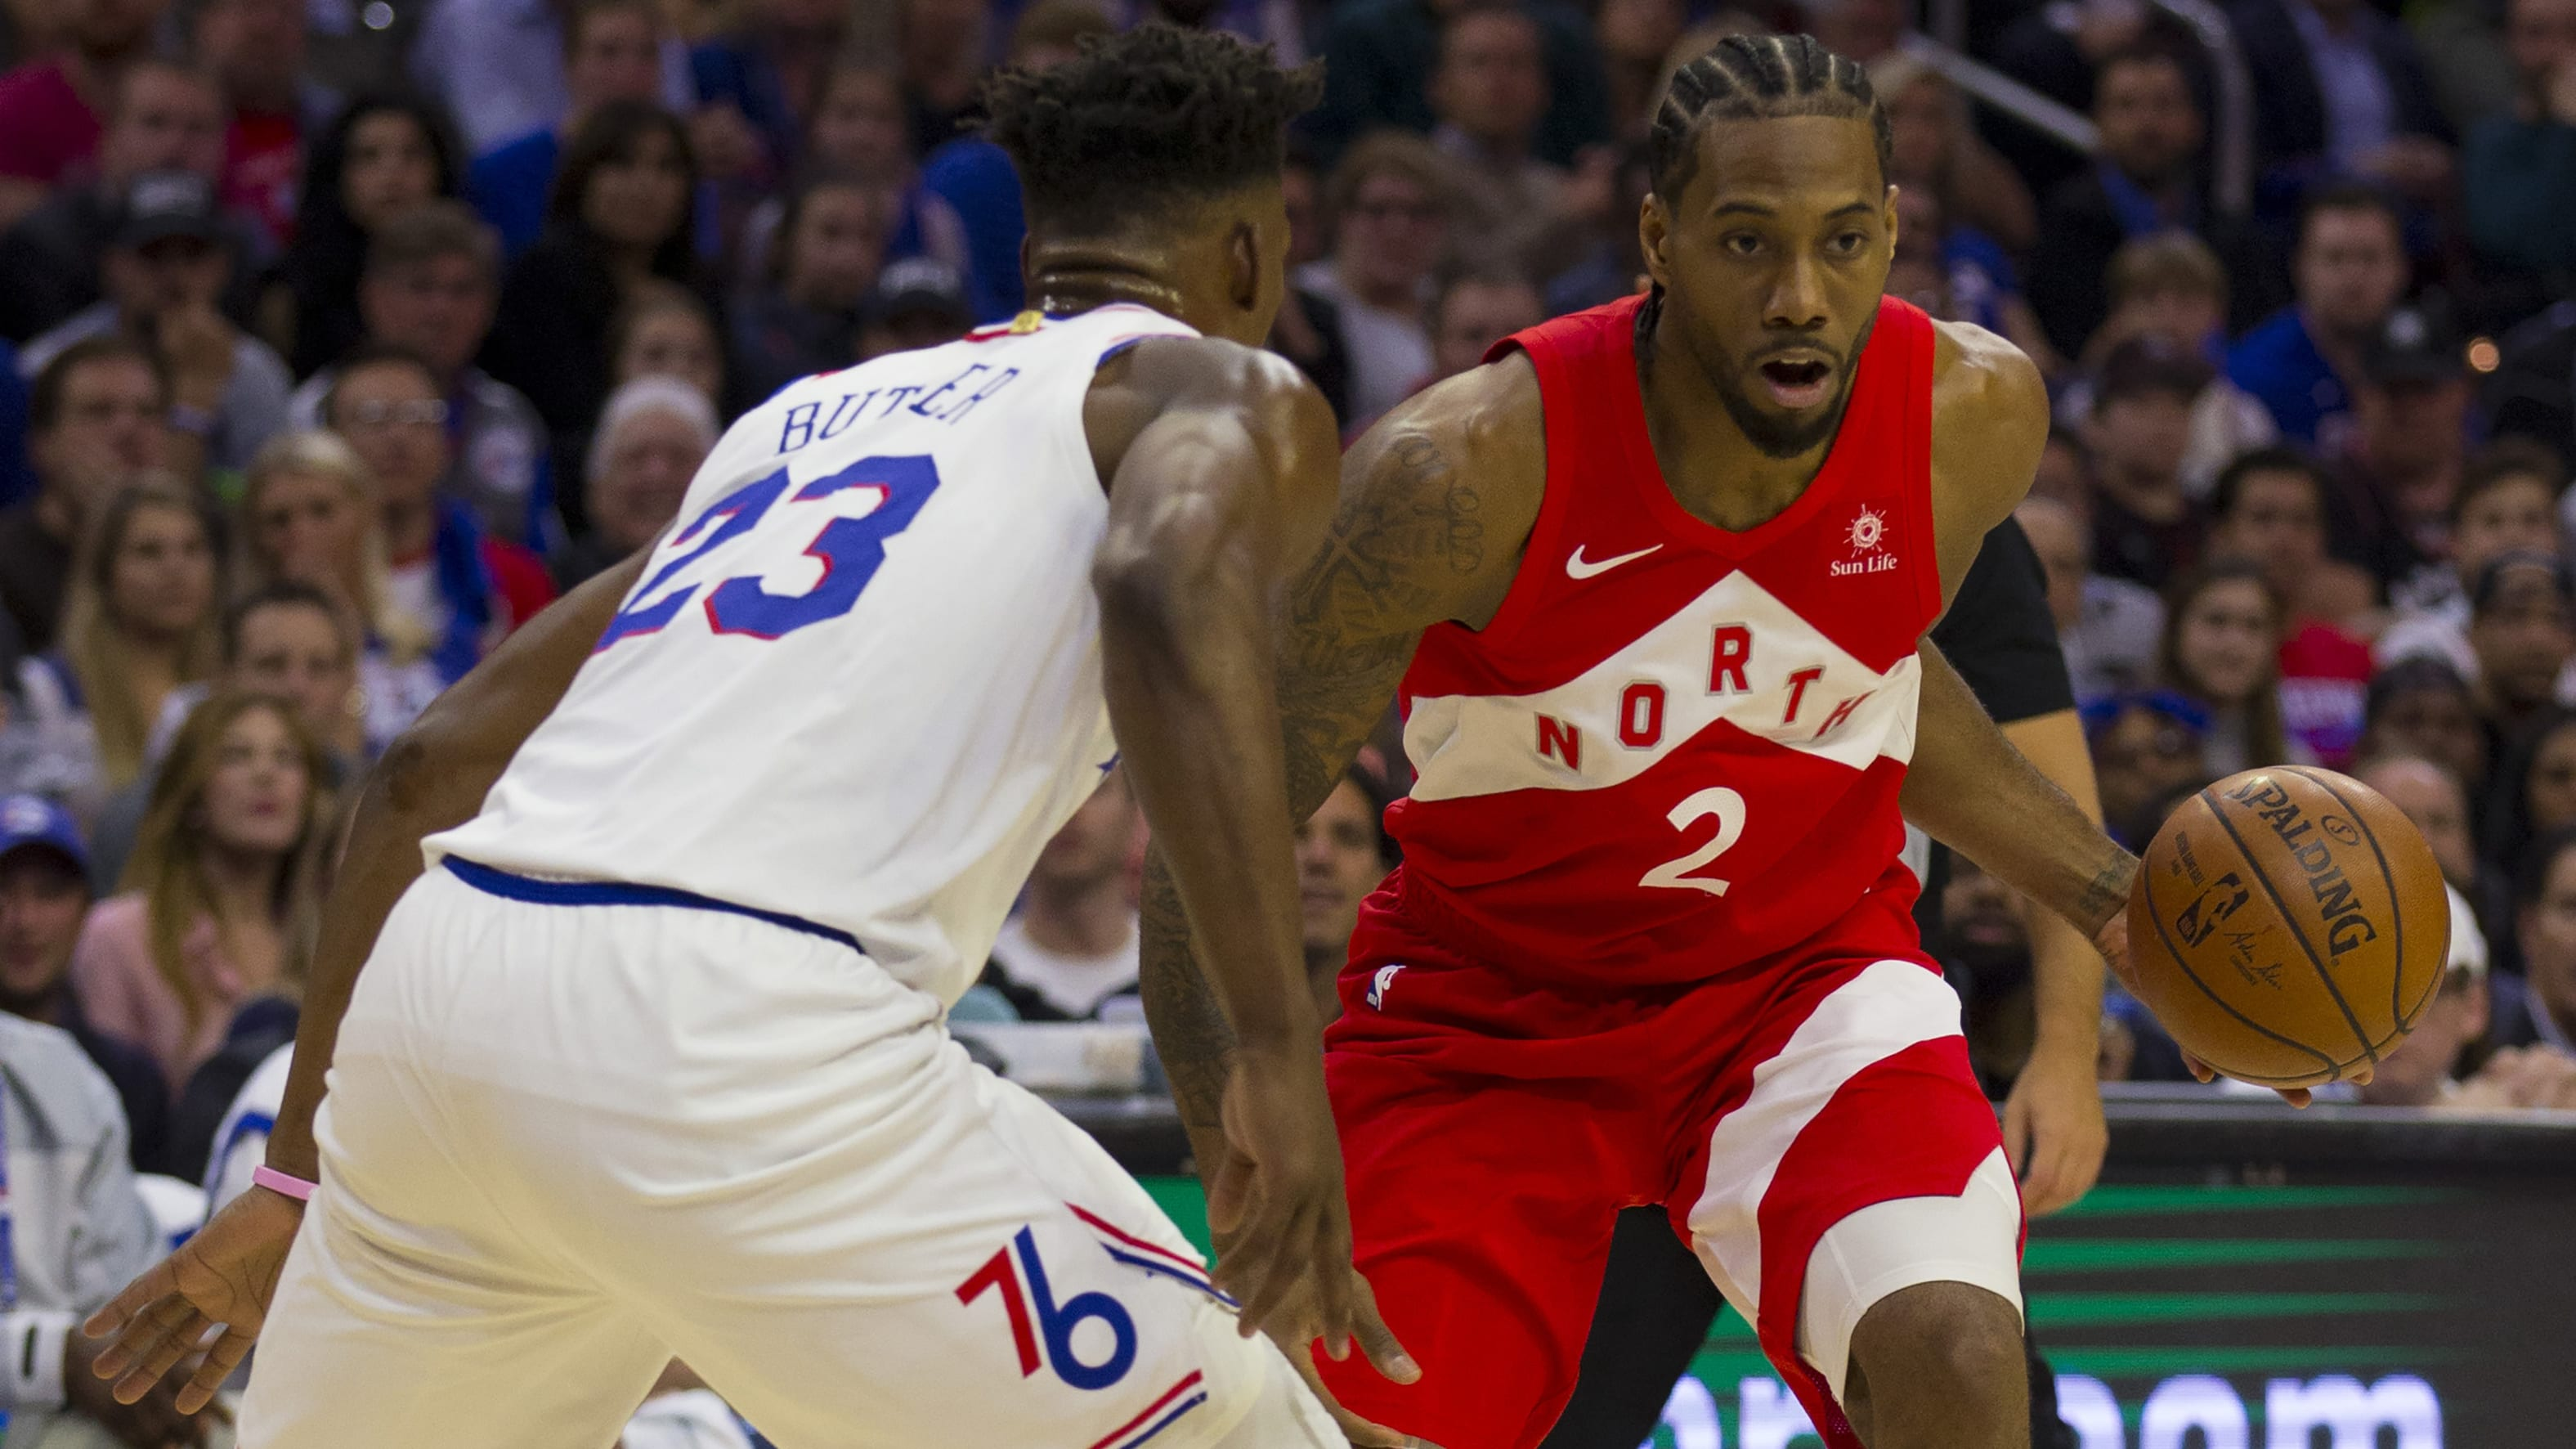 PHILADELPHIA, PA - MAY 09: Kawhi Leonard #2 of the Toronto Raptors dribbles the ball against Jimmy Butler #23 of the Philadelphia 76ers in Game Six of the Eastern Conference Semifinals at the Wells Fargo Center on May 9, 2019 in Philadelphia, Pennsylvania. The 76ers defeated the Raptors 112-101. NOTE TO USER: User expressly acknowledges and agrees that, by downloading and or using this photograph, User is consenting to the terms and conditions of the Getty Images License Agreement. (Photo by Mitchell Leff/Getty Images)